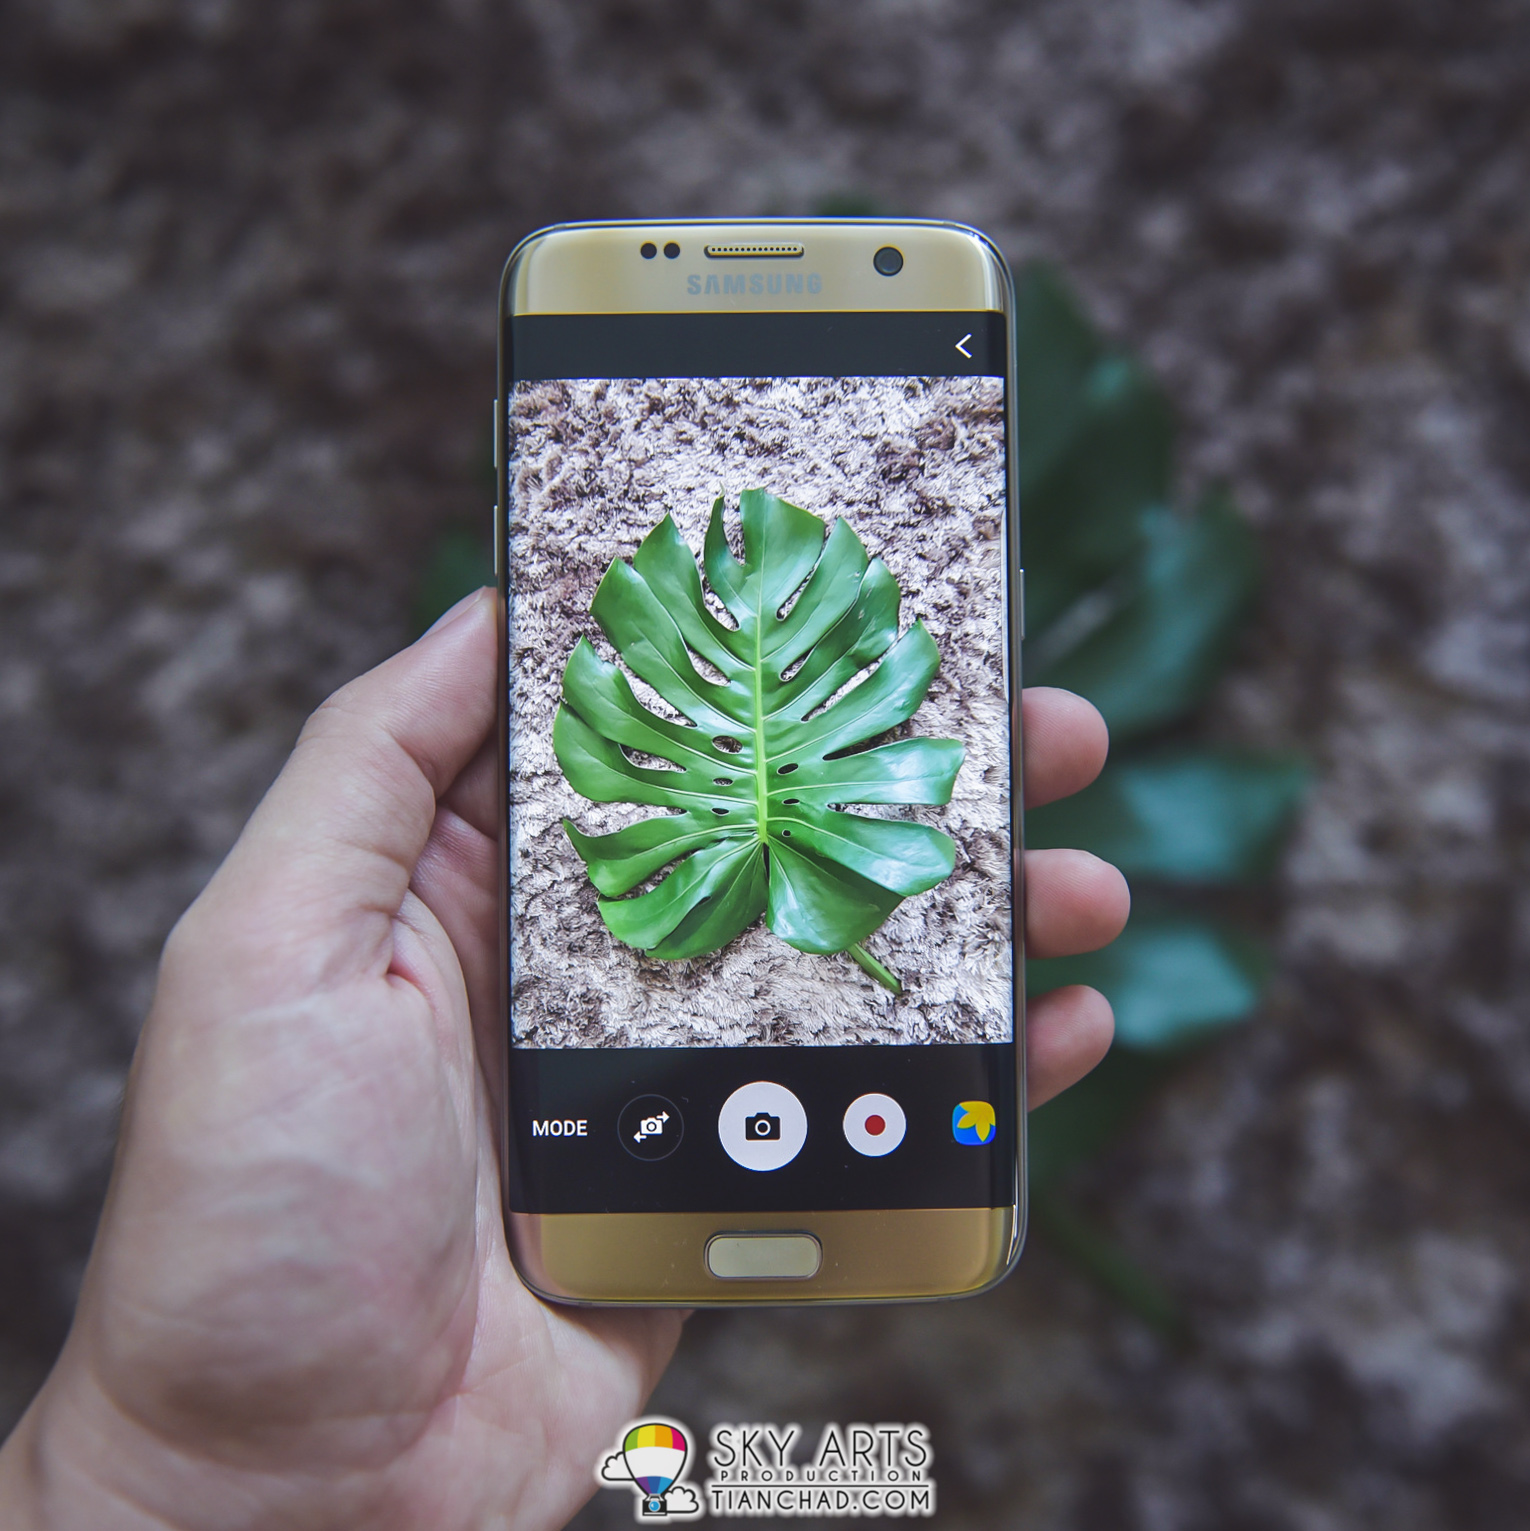 Samsung Galaxy S7 Edge is a good portable camera for outdoor activities Especially when it is water and dust resistant